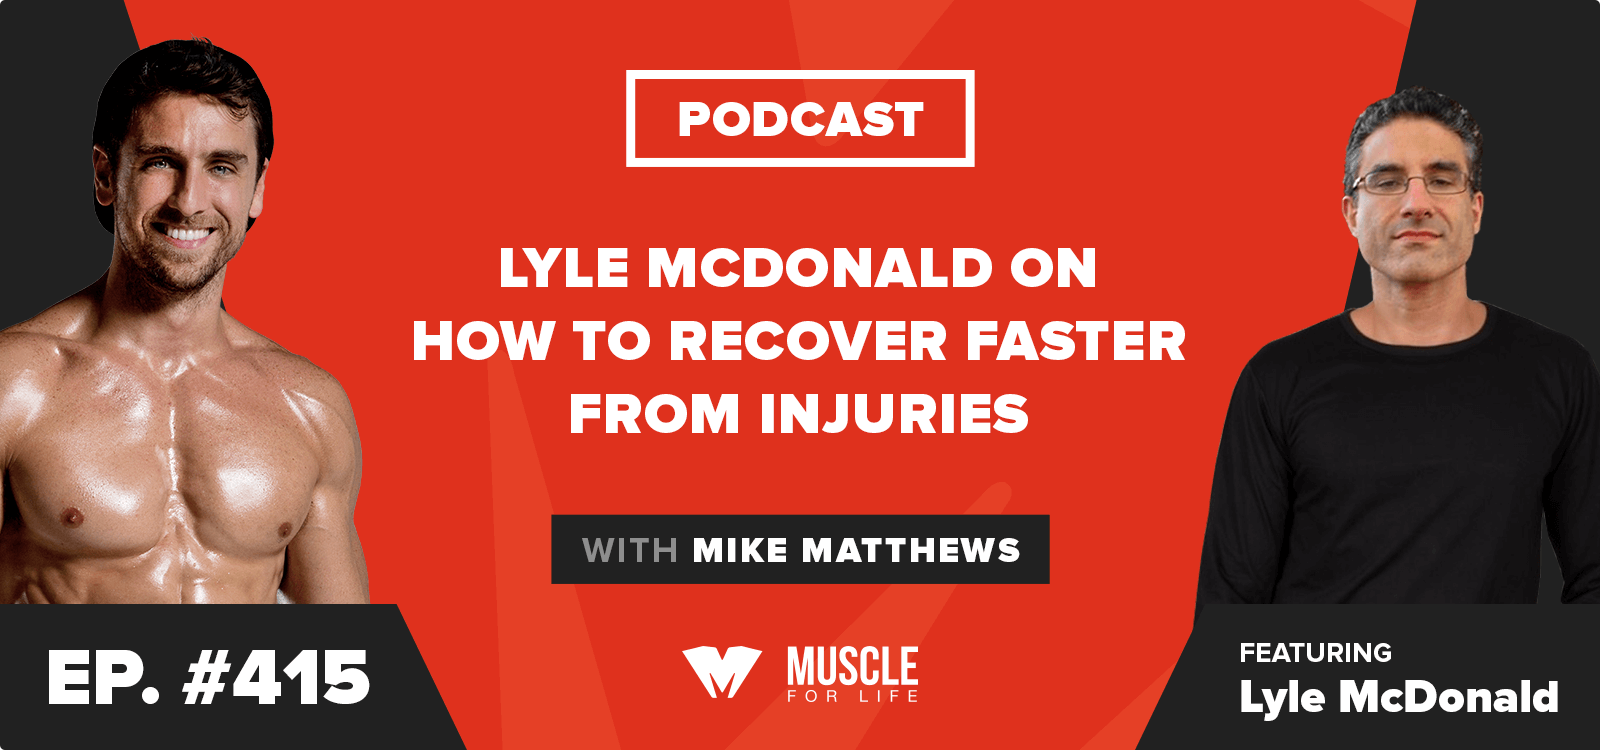 Lyle-McDonald-on-How-to-Recover-Faster-from-Injuries_blogpost_1600x750